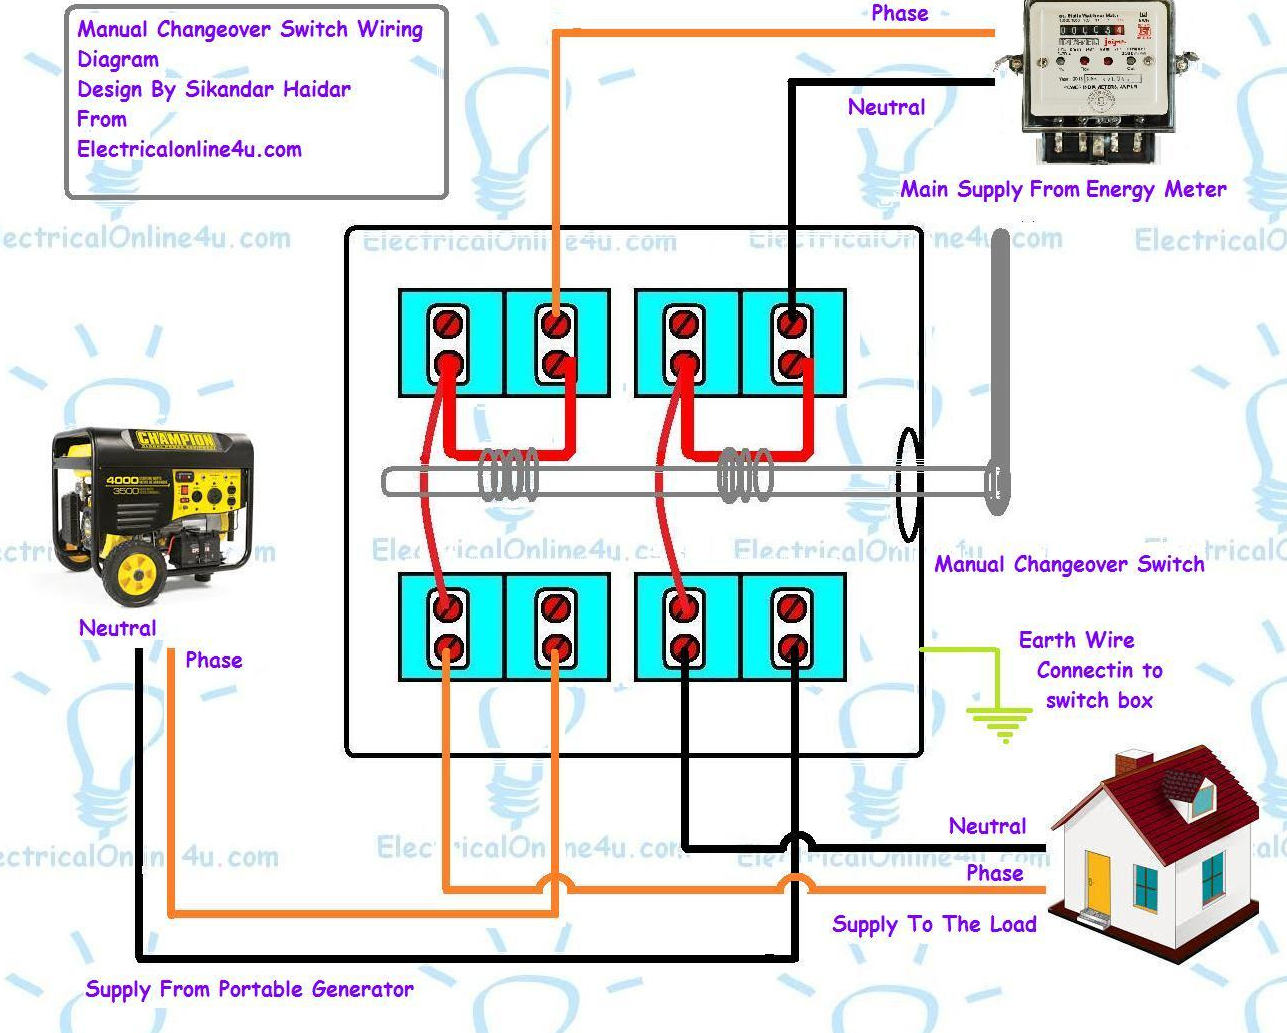 Manual Three Phase Changeover Switch Diagram